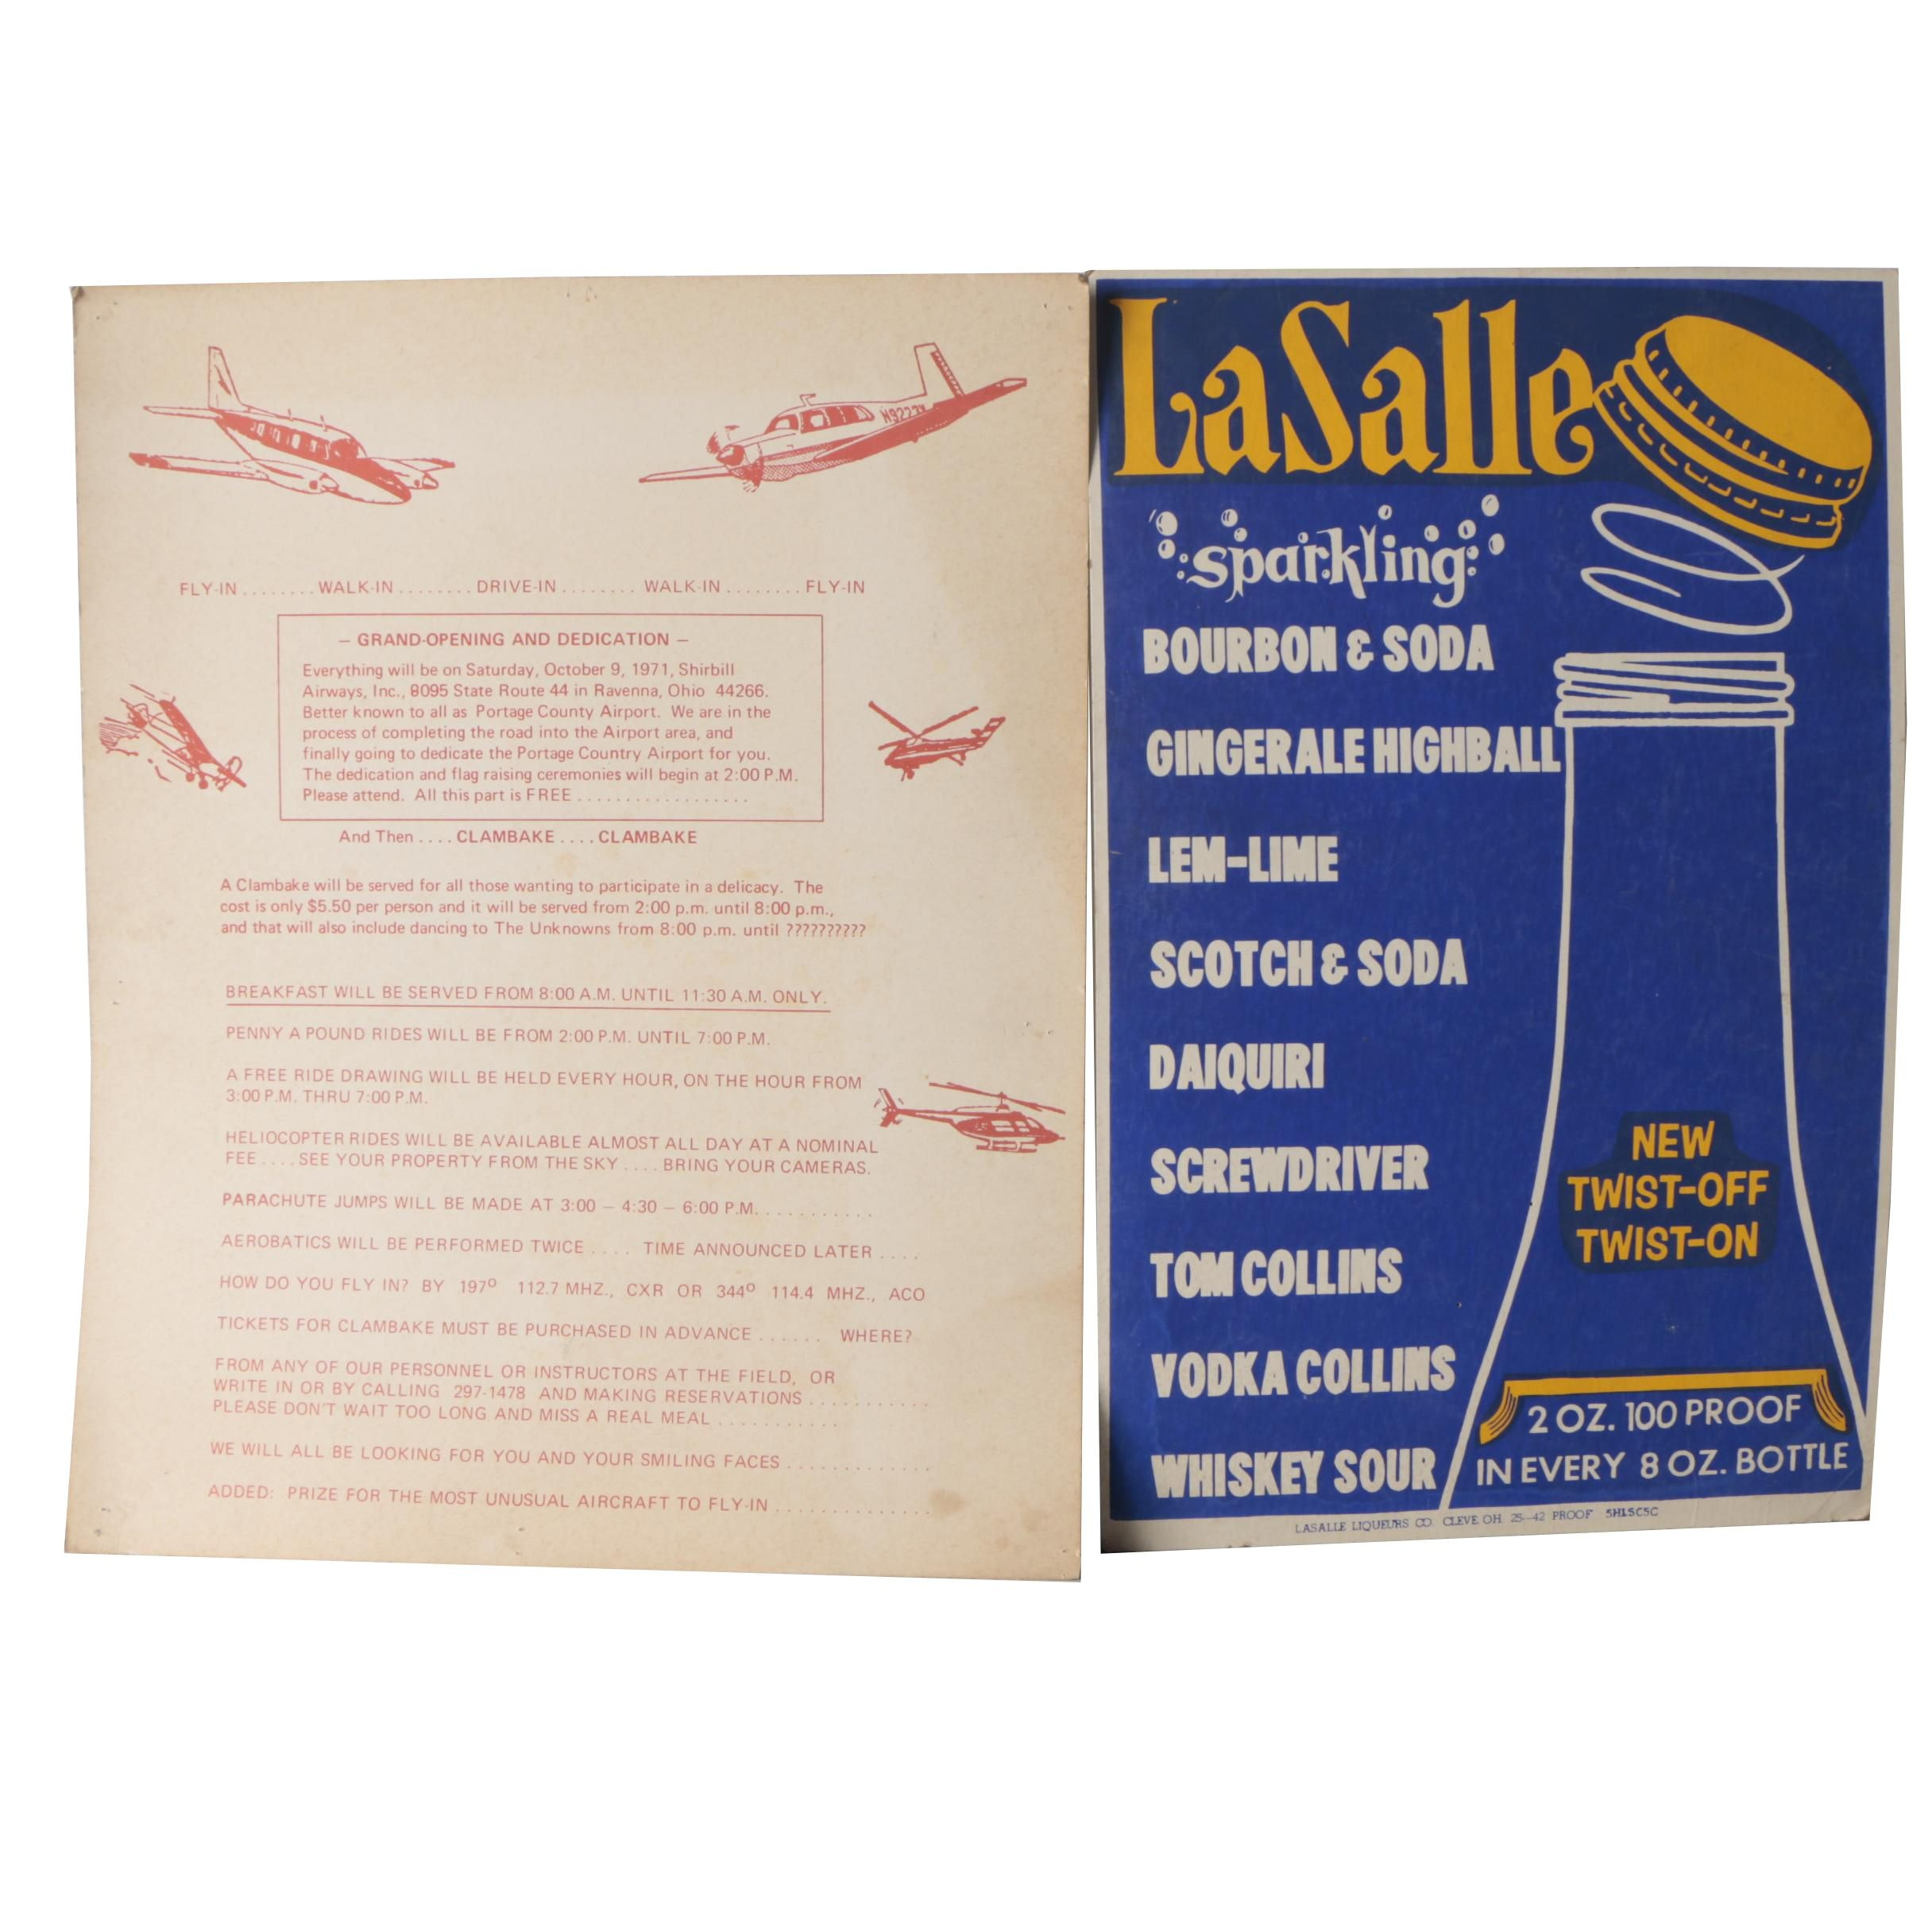 Portage County Airport Dedication Celebration and La Salle Sparkling Posters